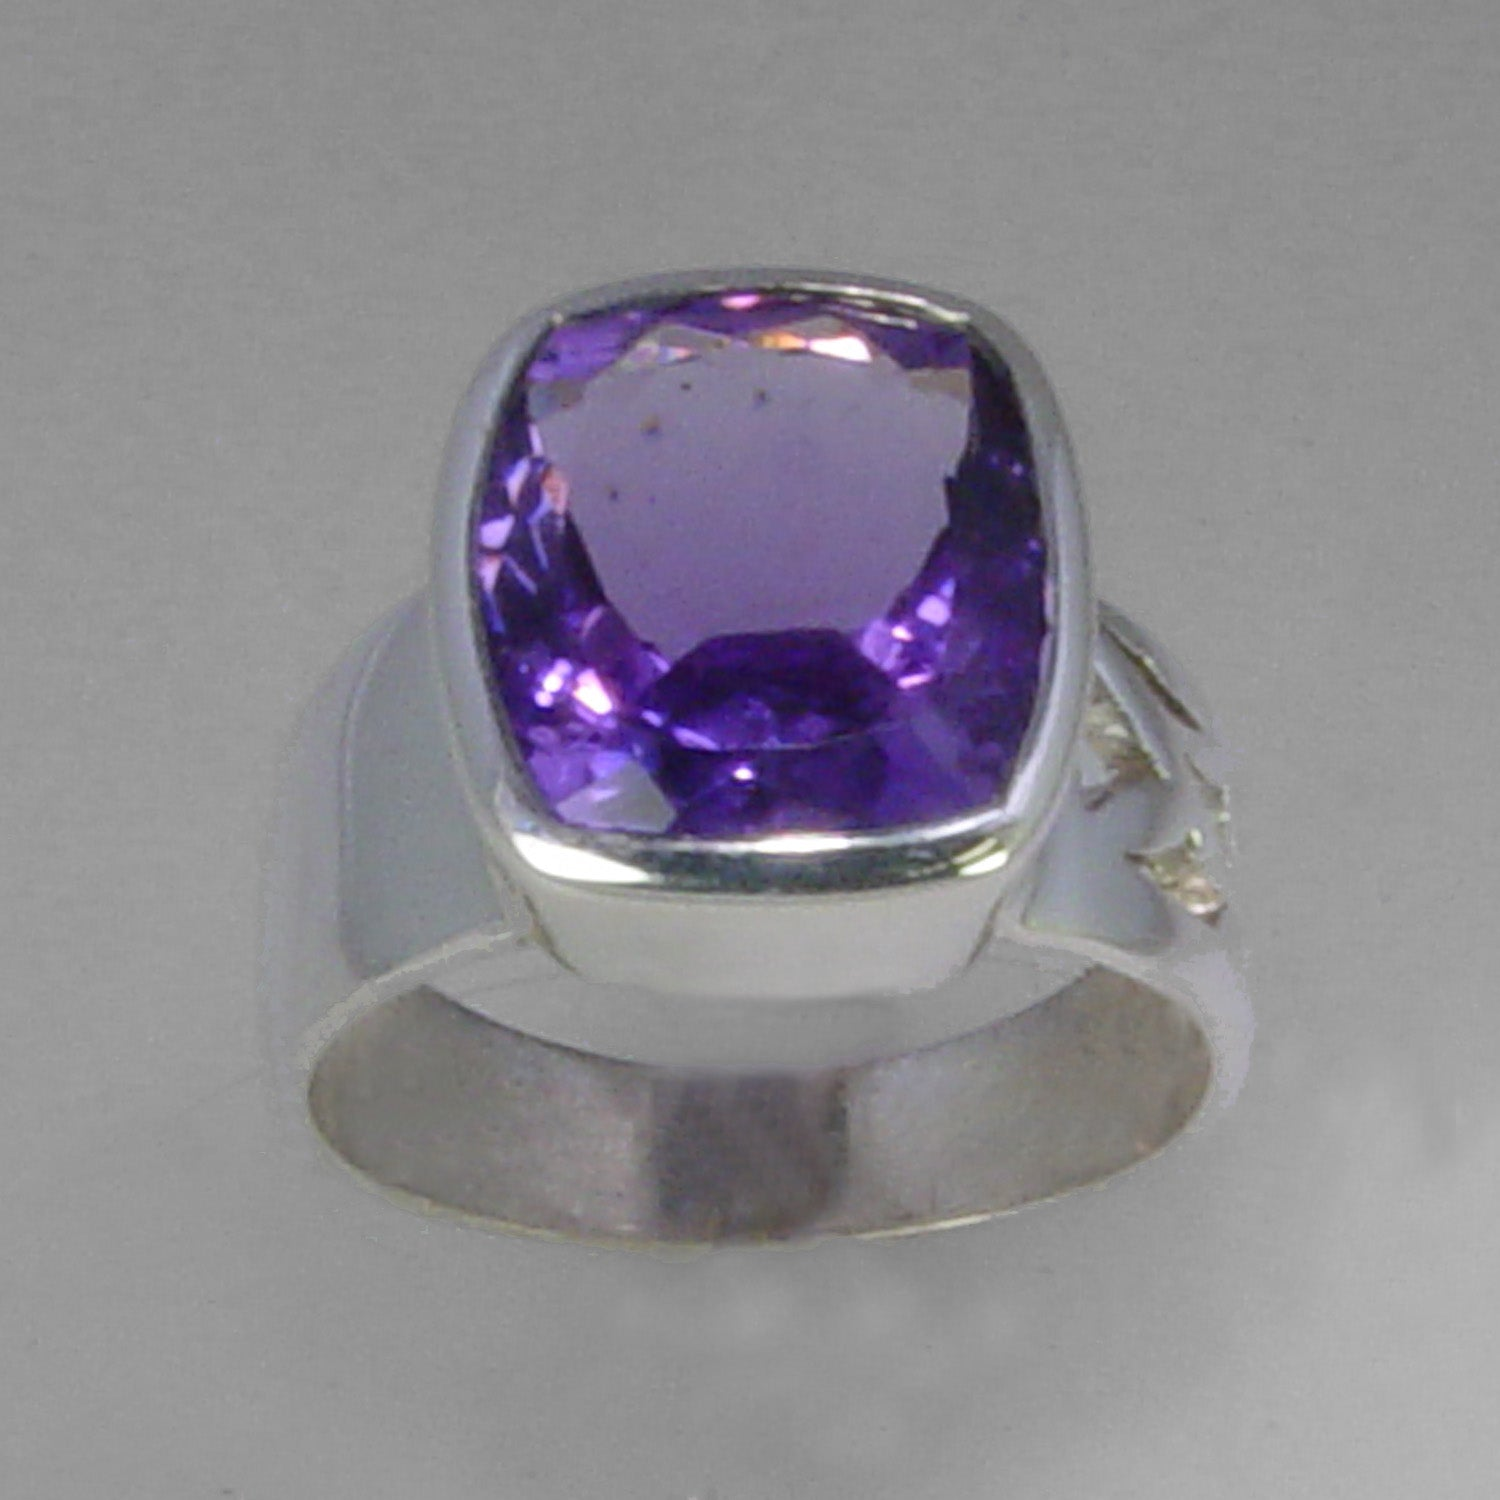 Amethyst 6 ct Antique Emerald Cut Bezel Set Sterling Silver Ring, Size 7